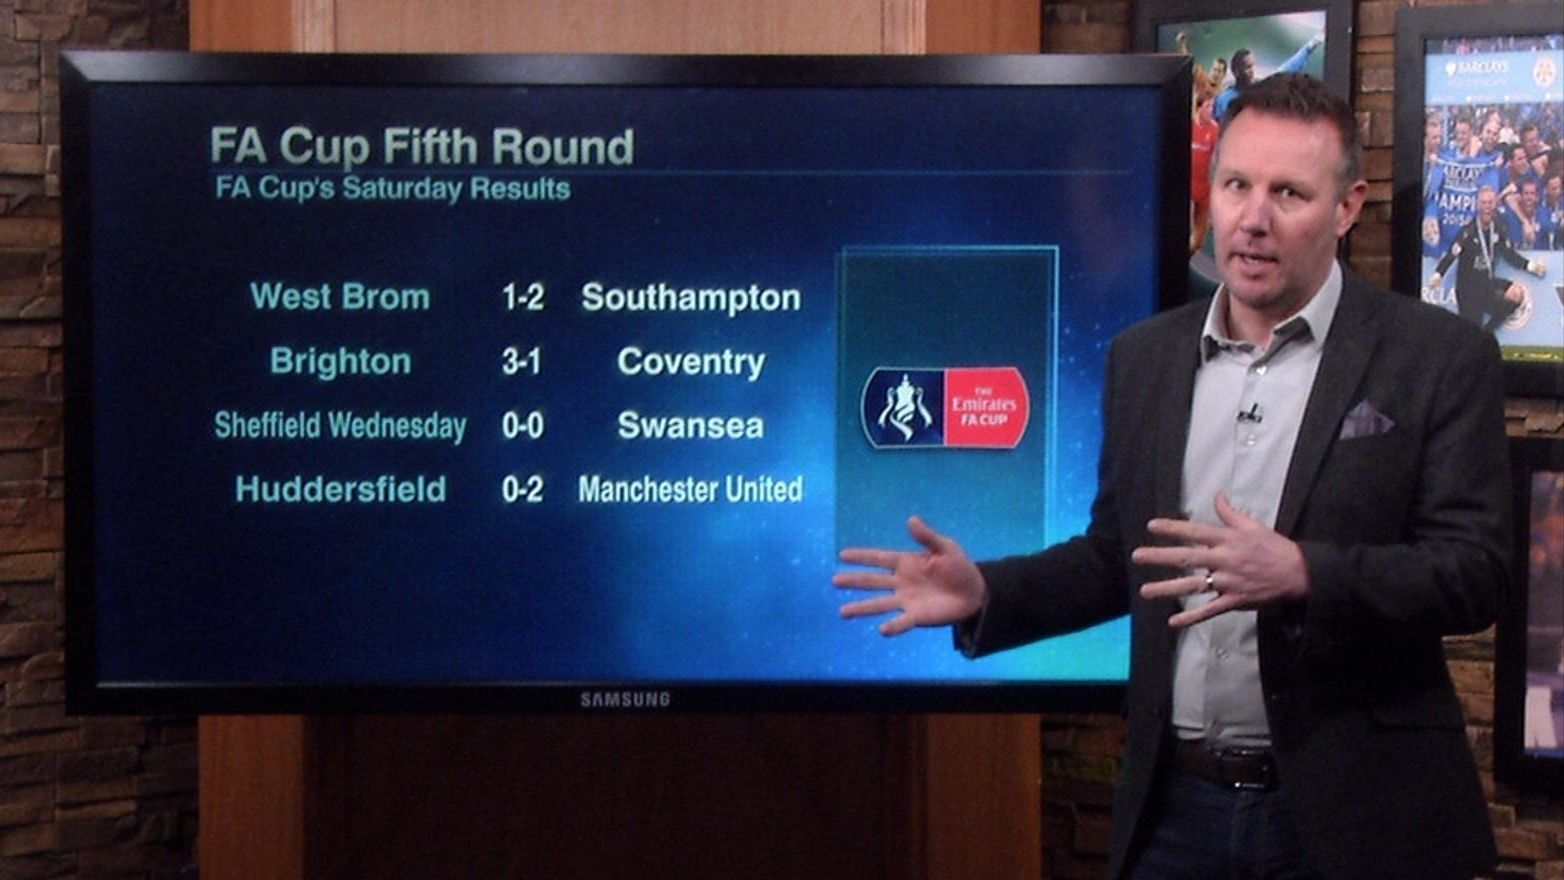 FA Cup: United advance, Southampton win